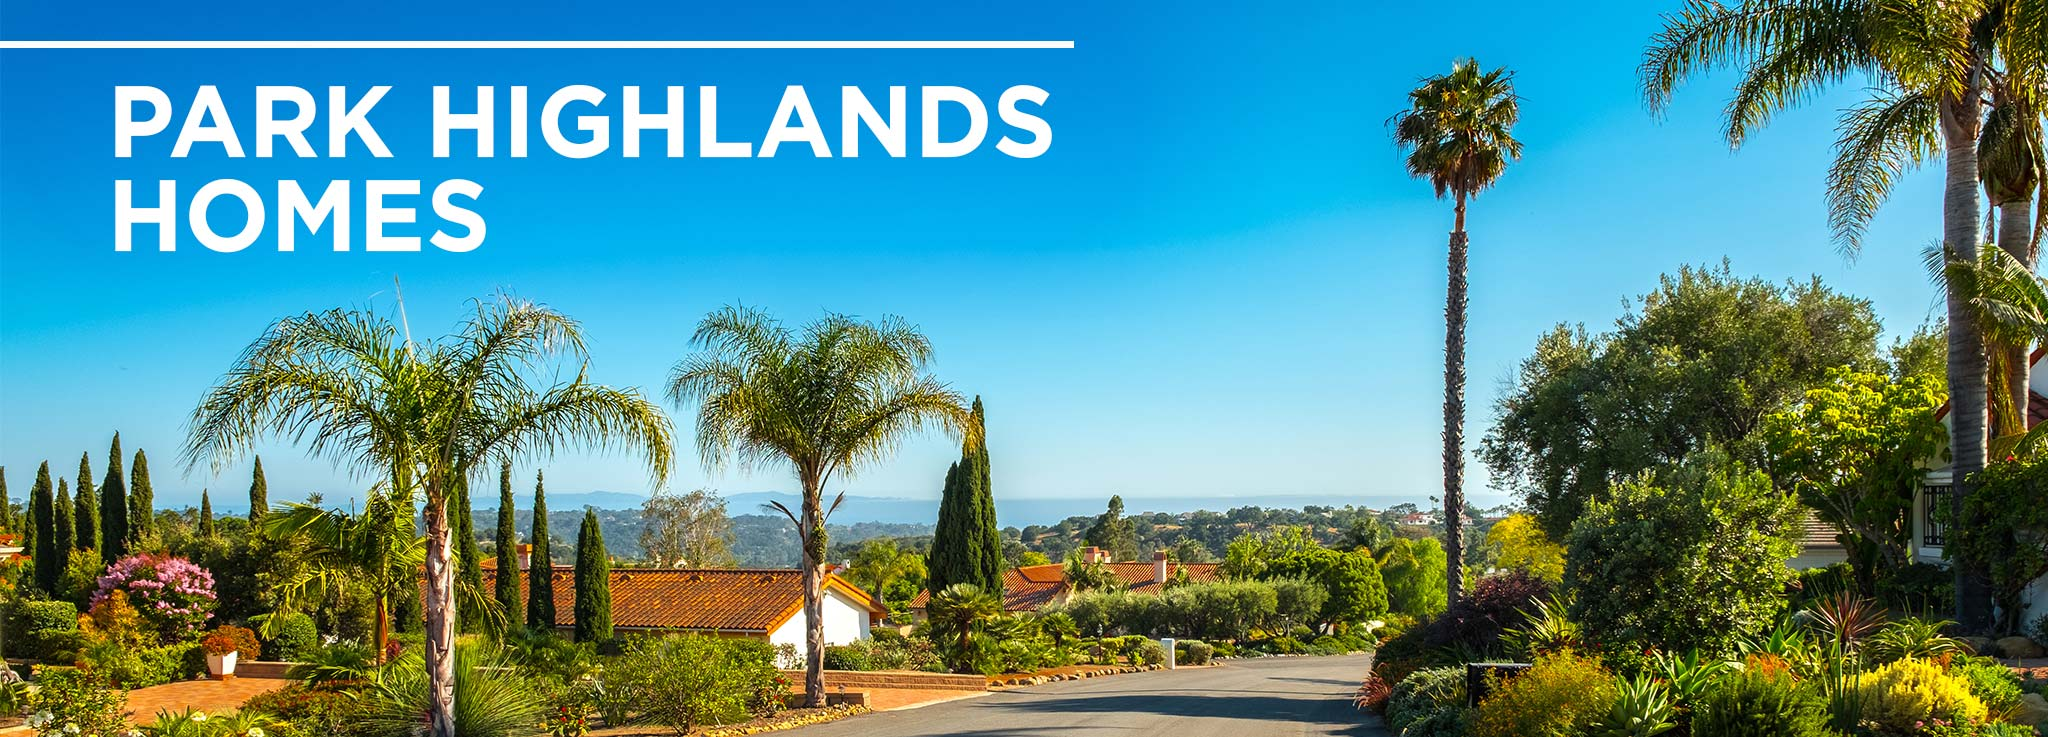 Homes for sale in the Park Highlands